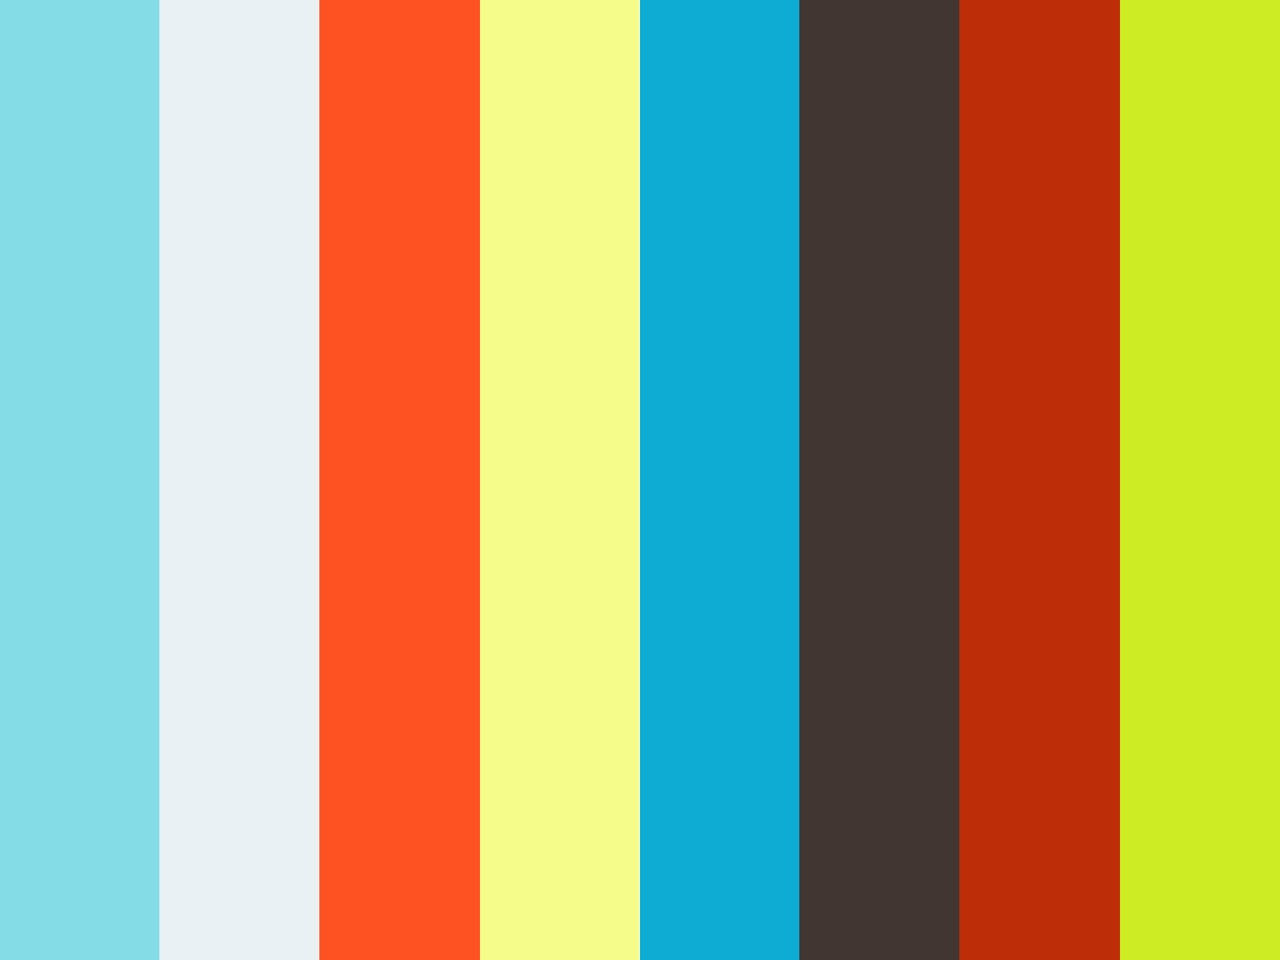 Gracie Sydney 7- Seven no-gi back attacks